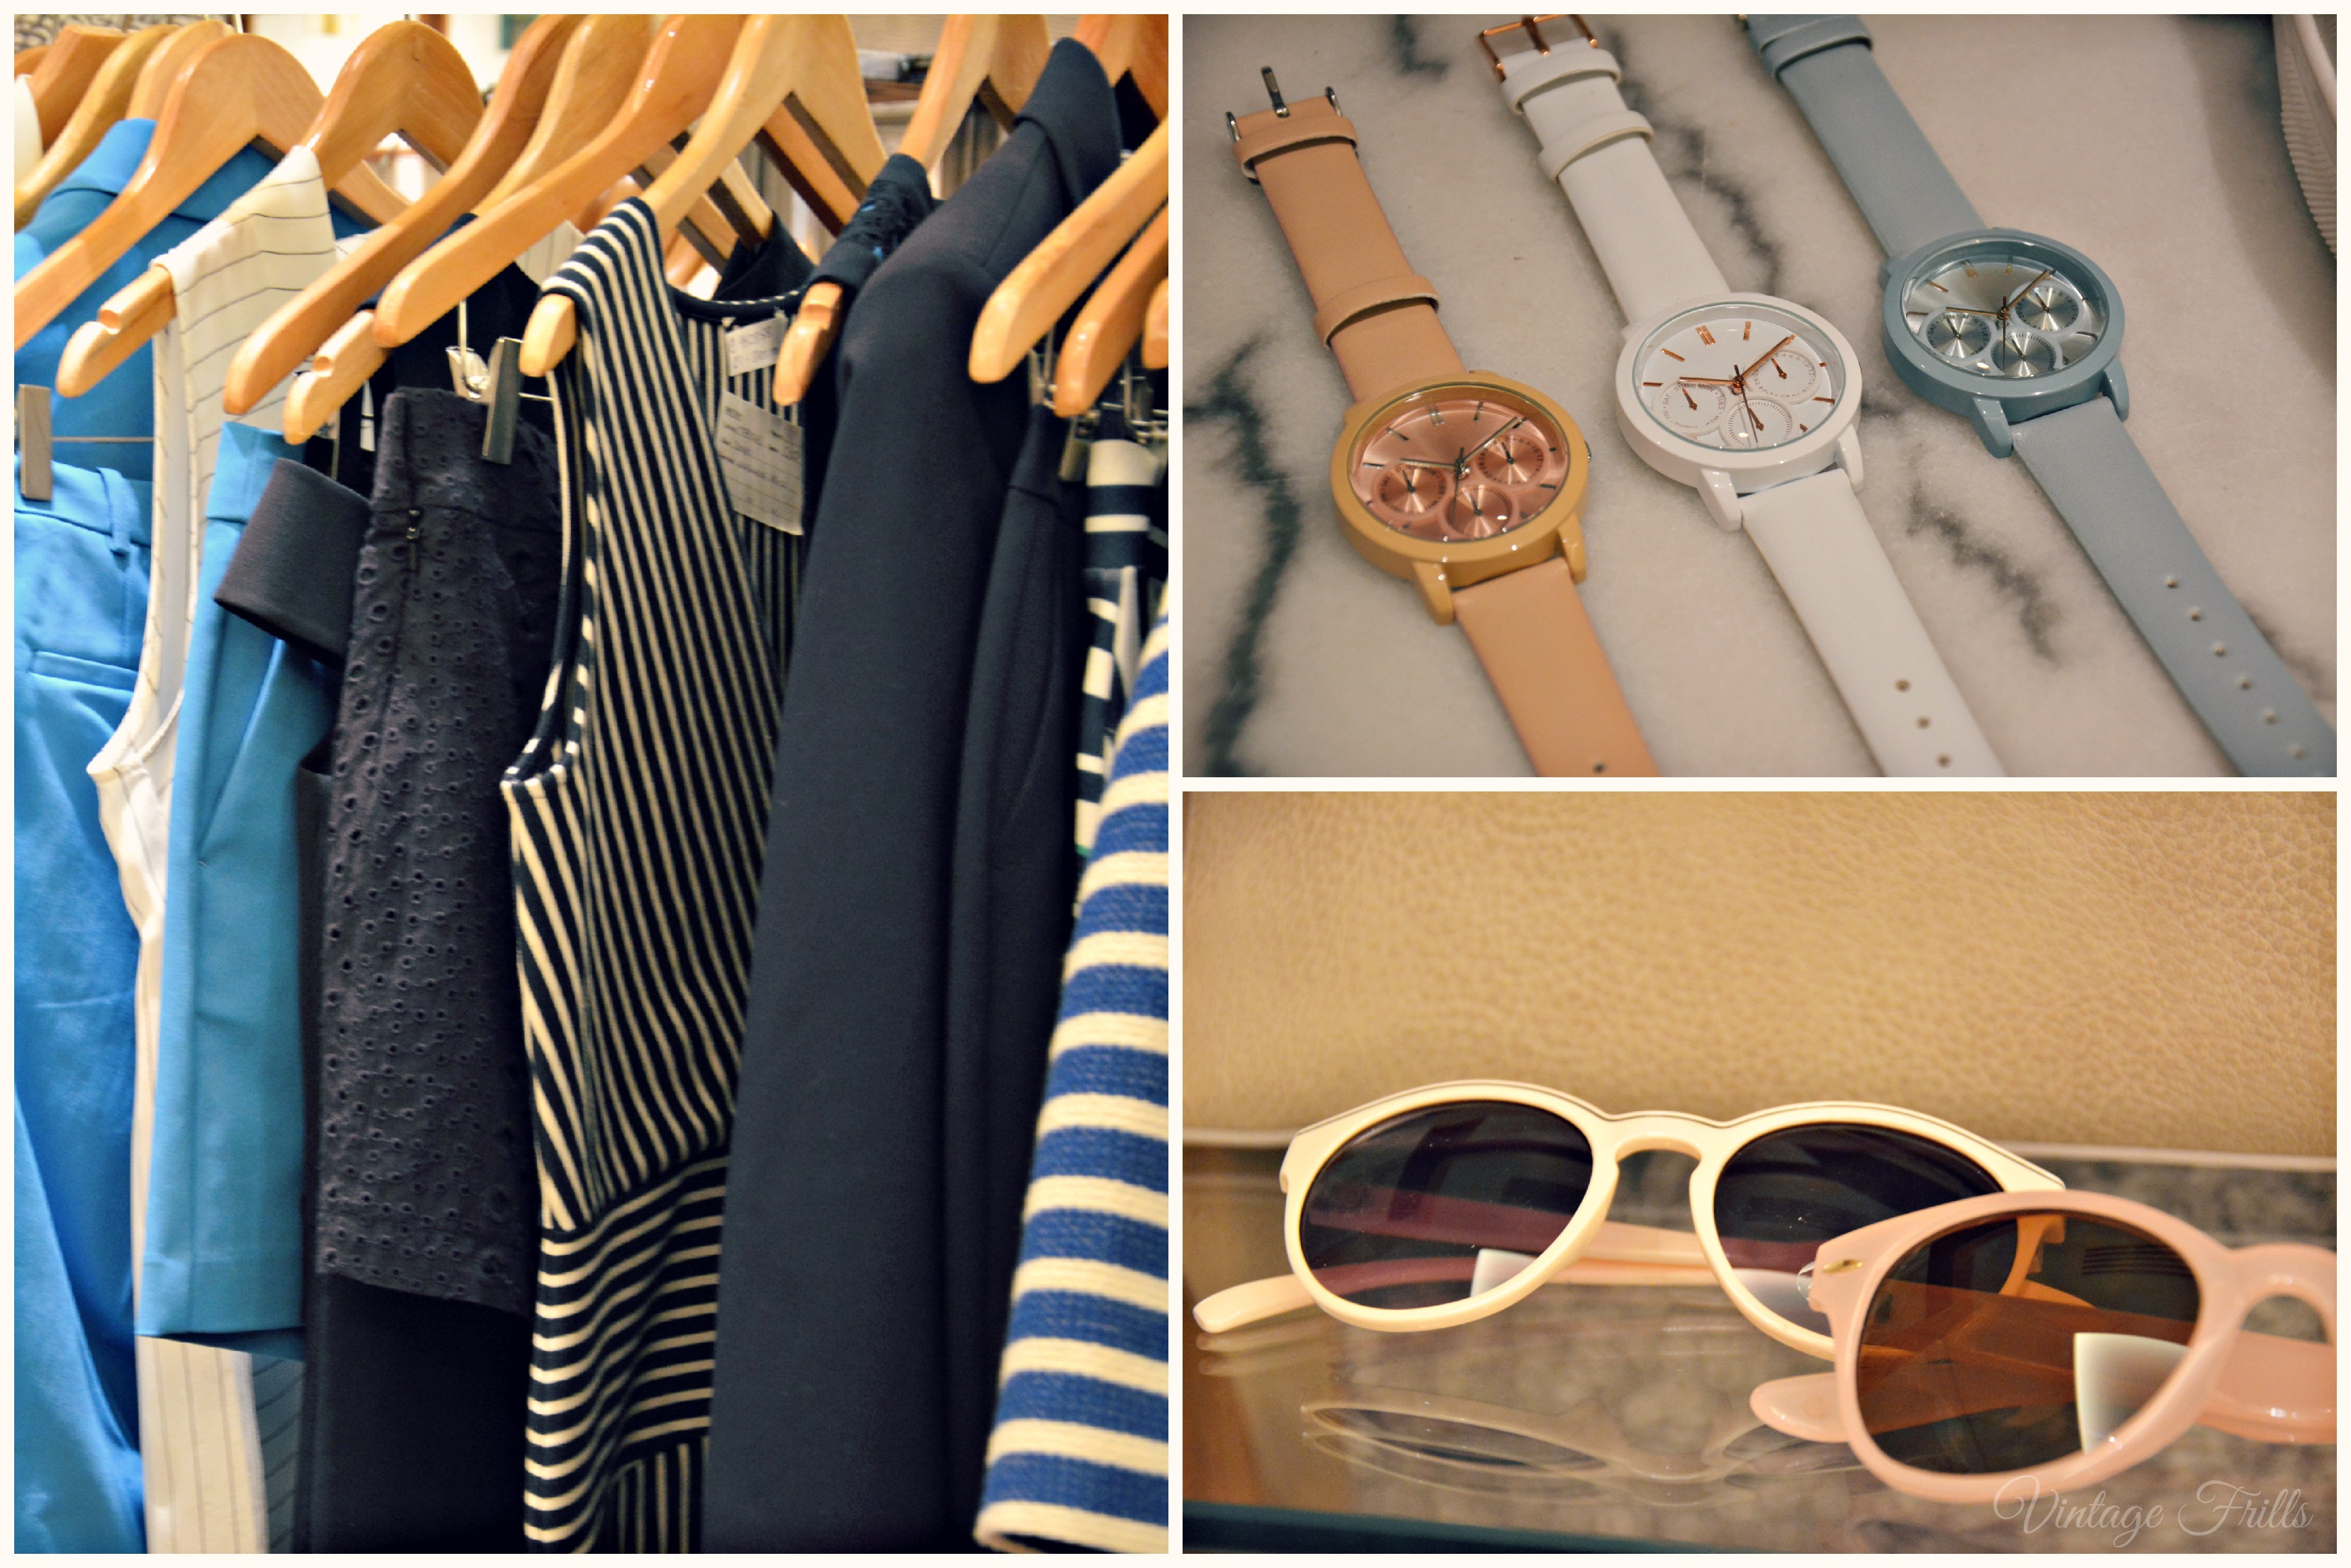 Next Summer 15 Press Day Clothes and Accessories